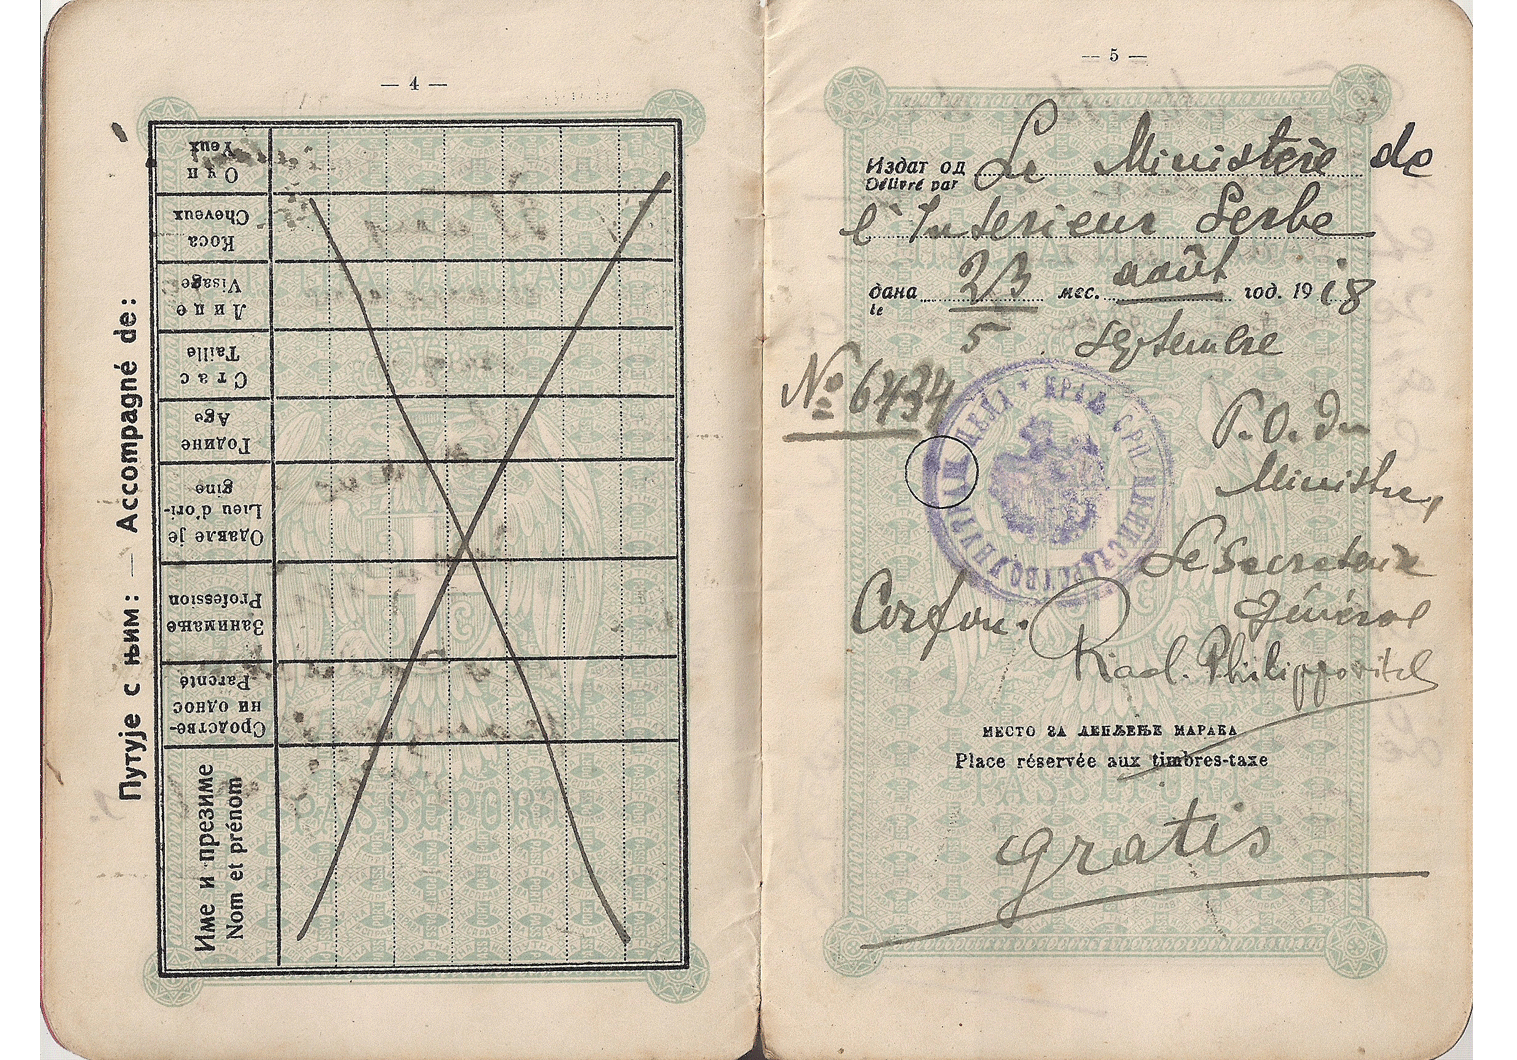 WWI offcial passport